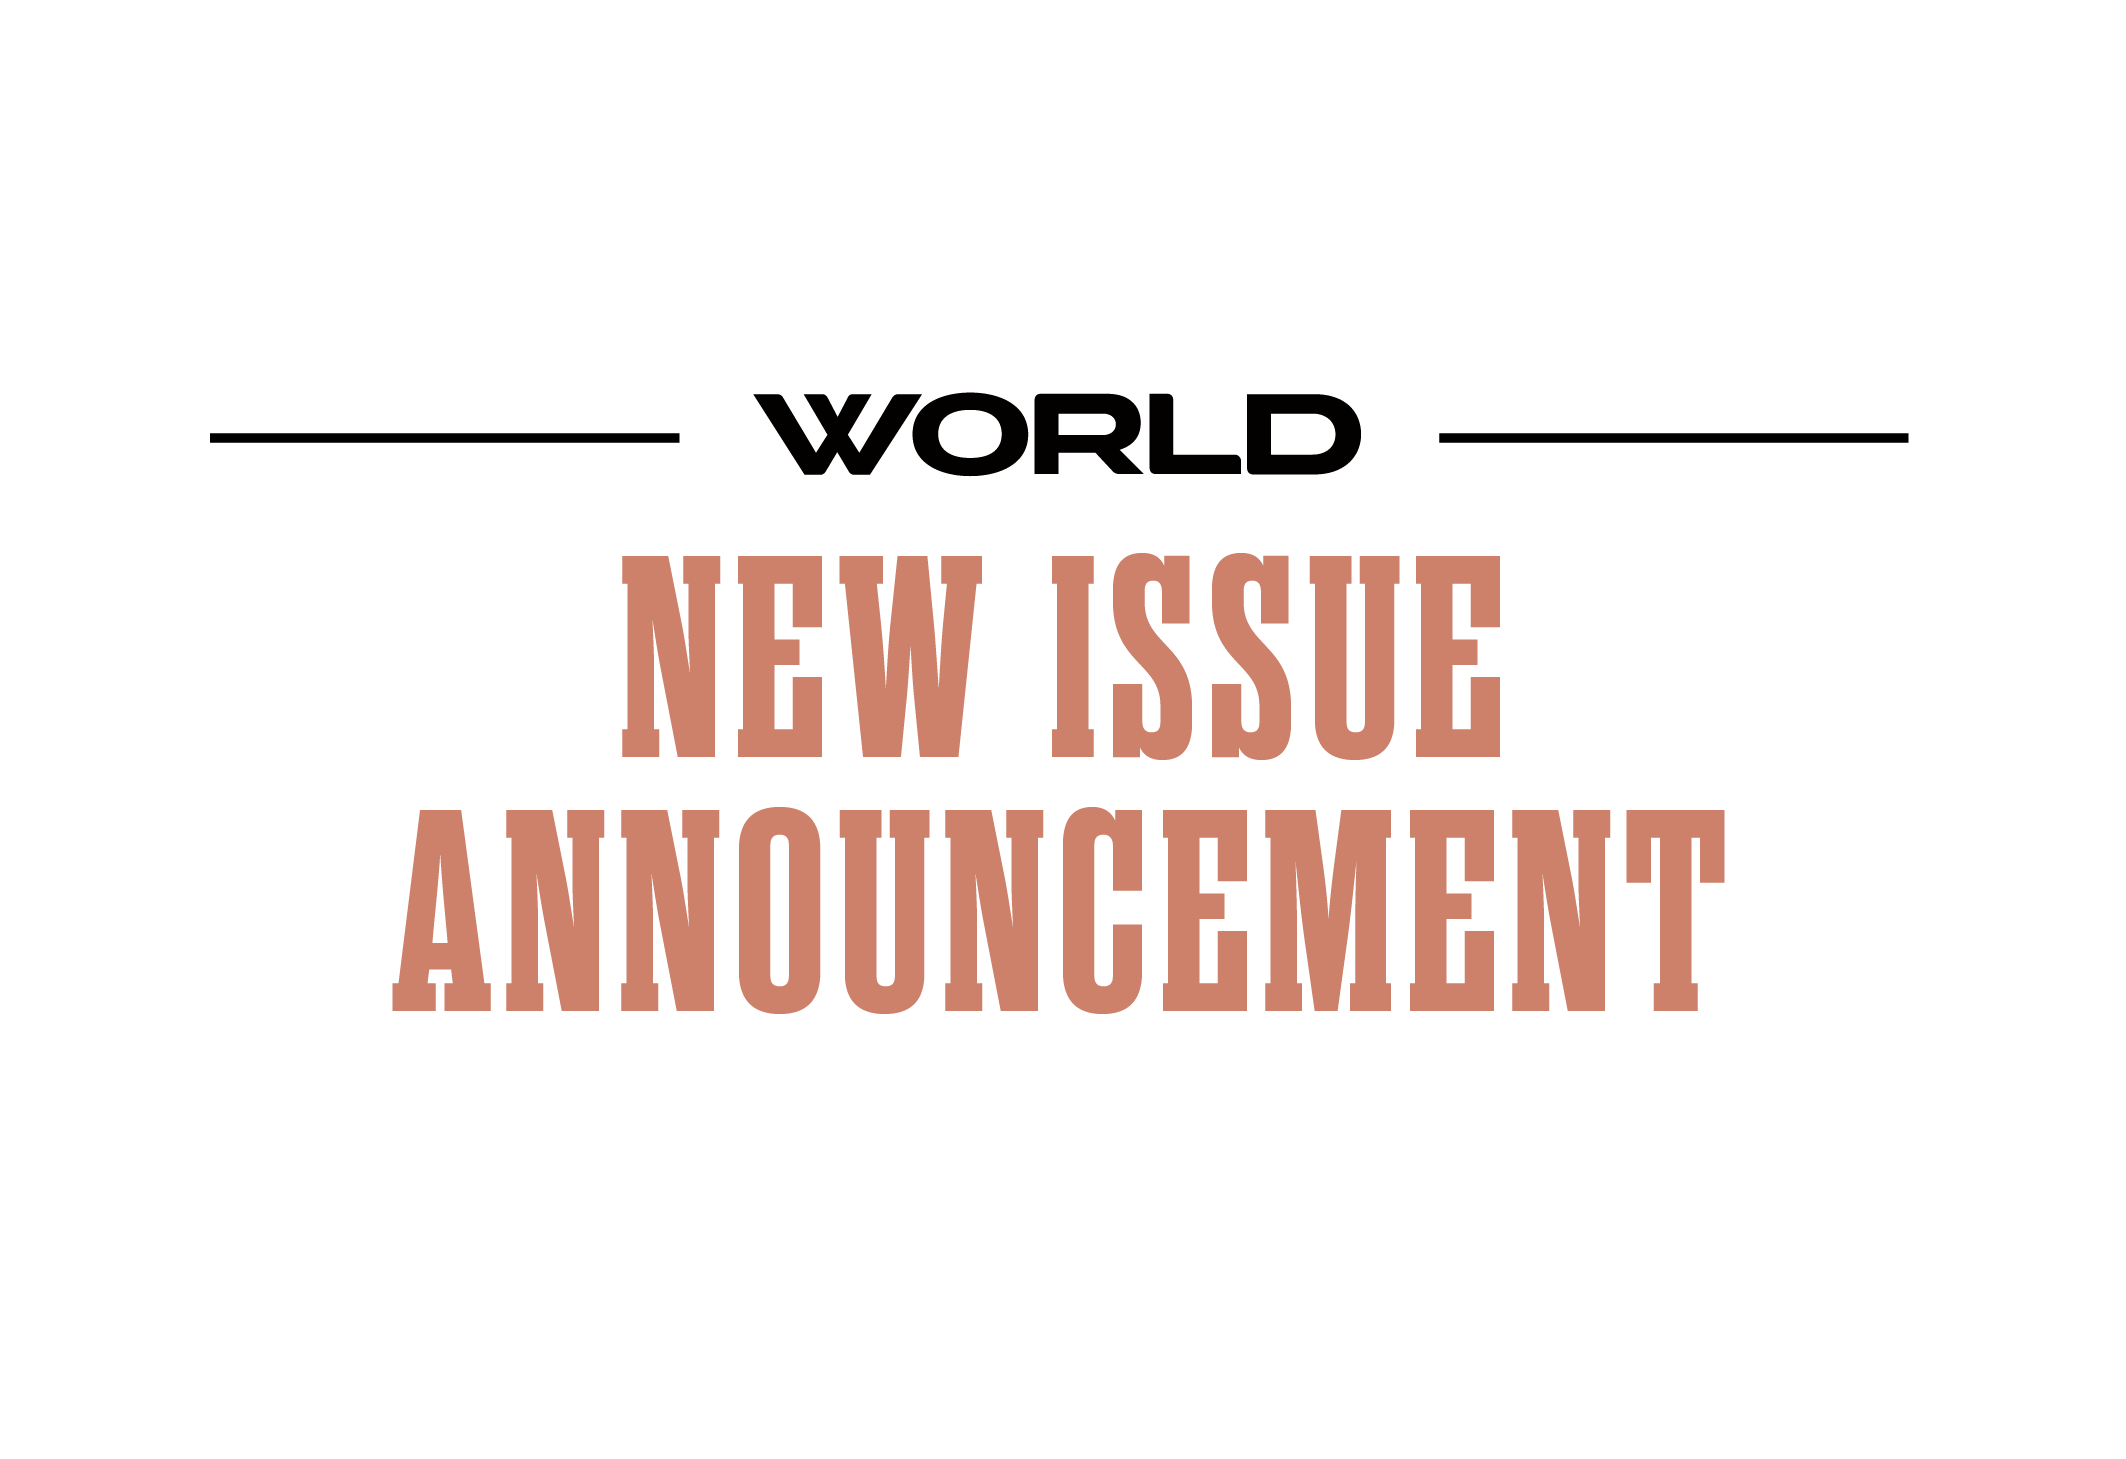 New Issue Announcement Image